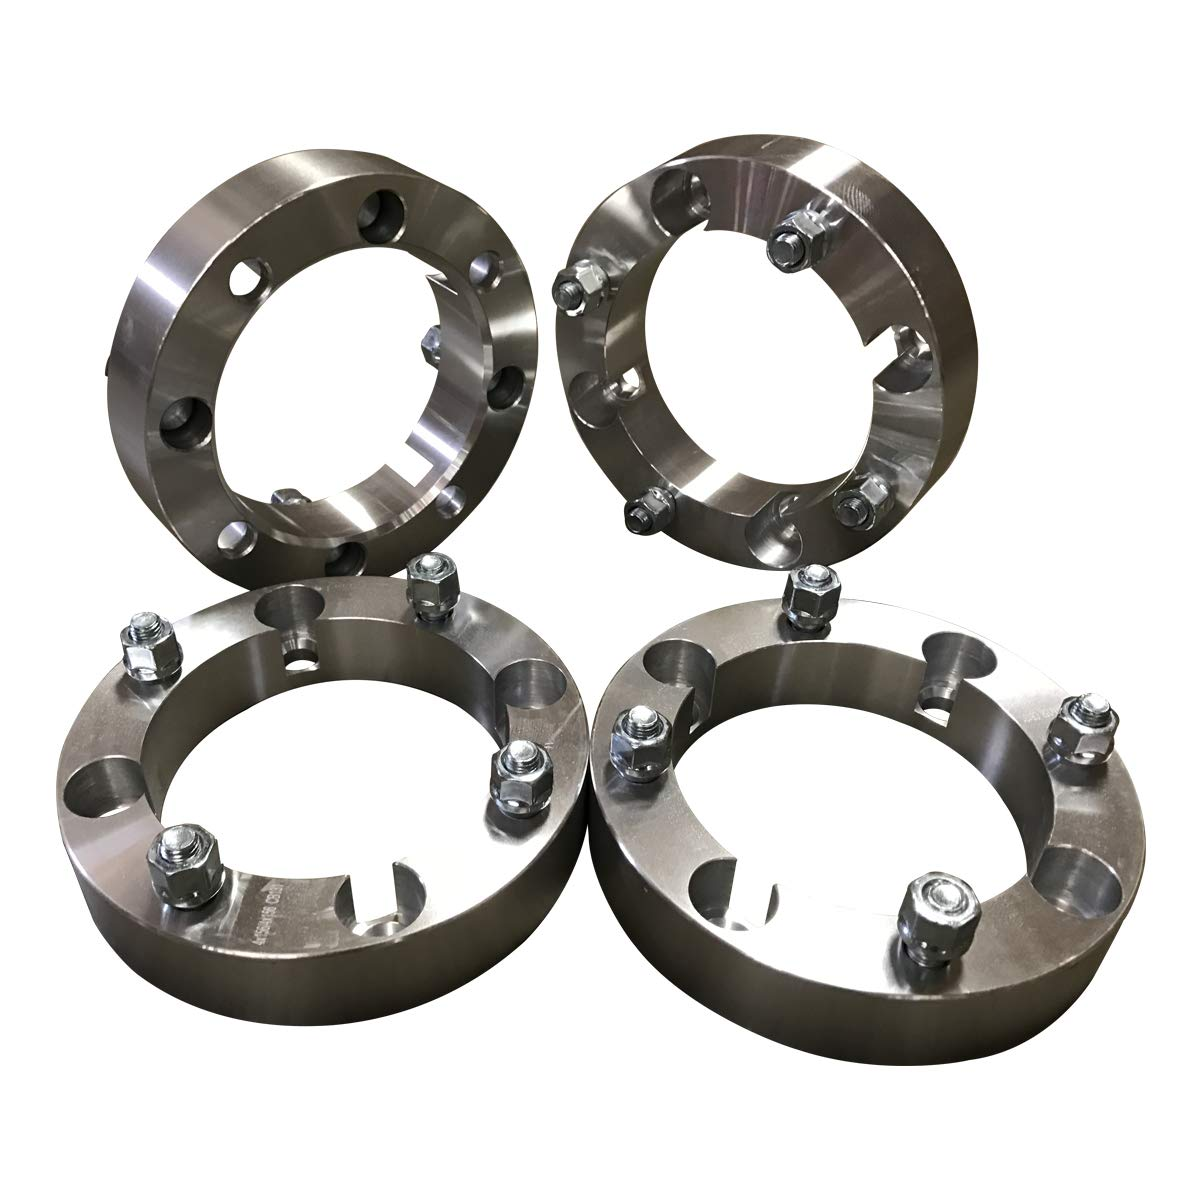 4x156 Wheel Spacers (1.5 inch) 38.1mm (131mm bore, 12x1.5 Studs & Nuts) 4 Lug wheelspacer for Polaris Ranger, RZR, XP 1000, S 900, S 1000, ATV, UTV (Silver) (4 pieces) FAS Motorsports